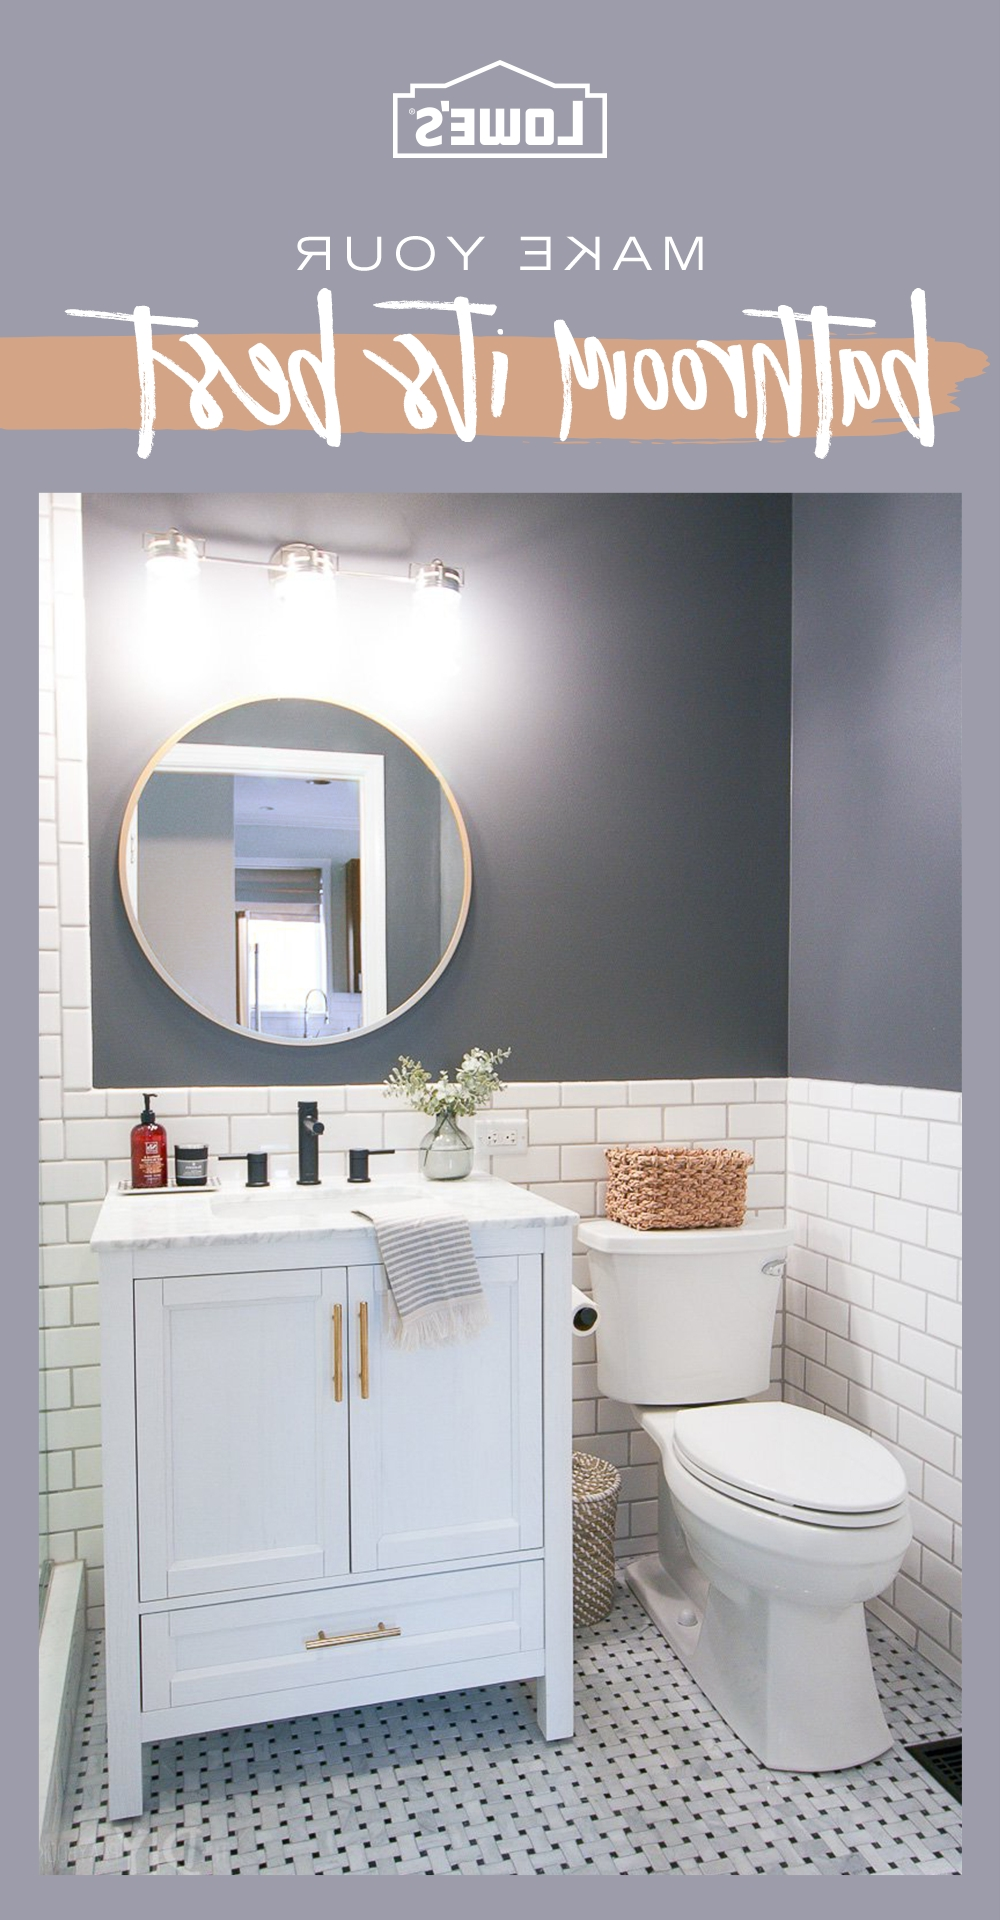 Looking To Beautify Your Bathroom? Lowes Has Everything Lowe'S Bathroom Design Tool